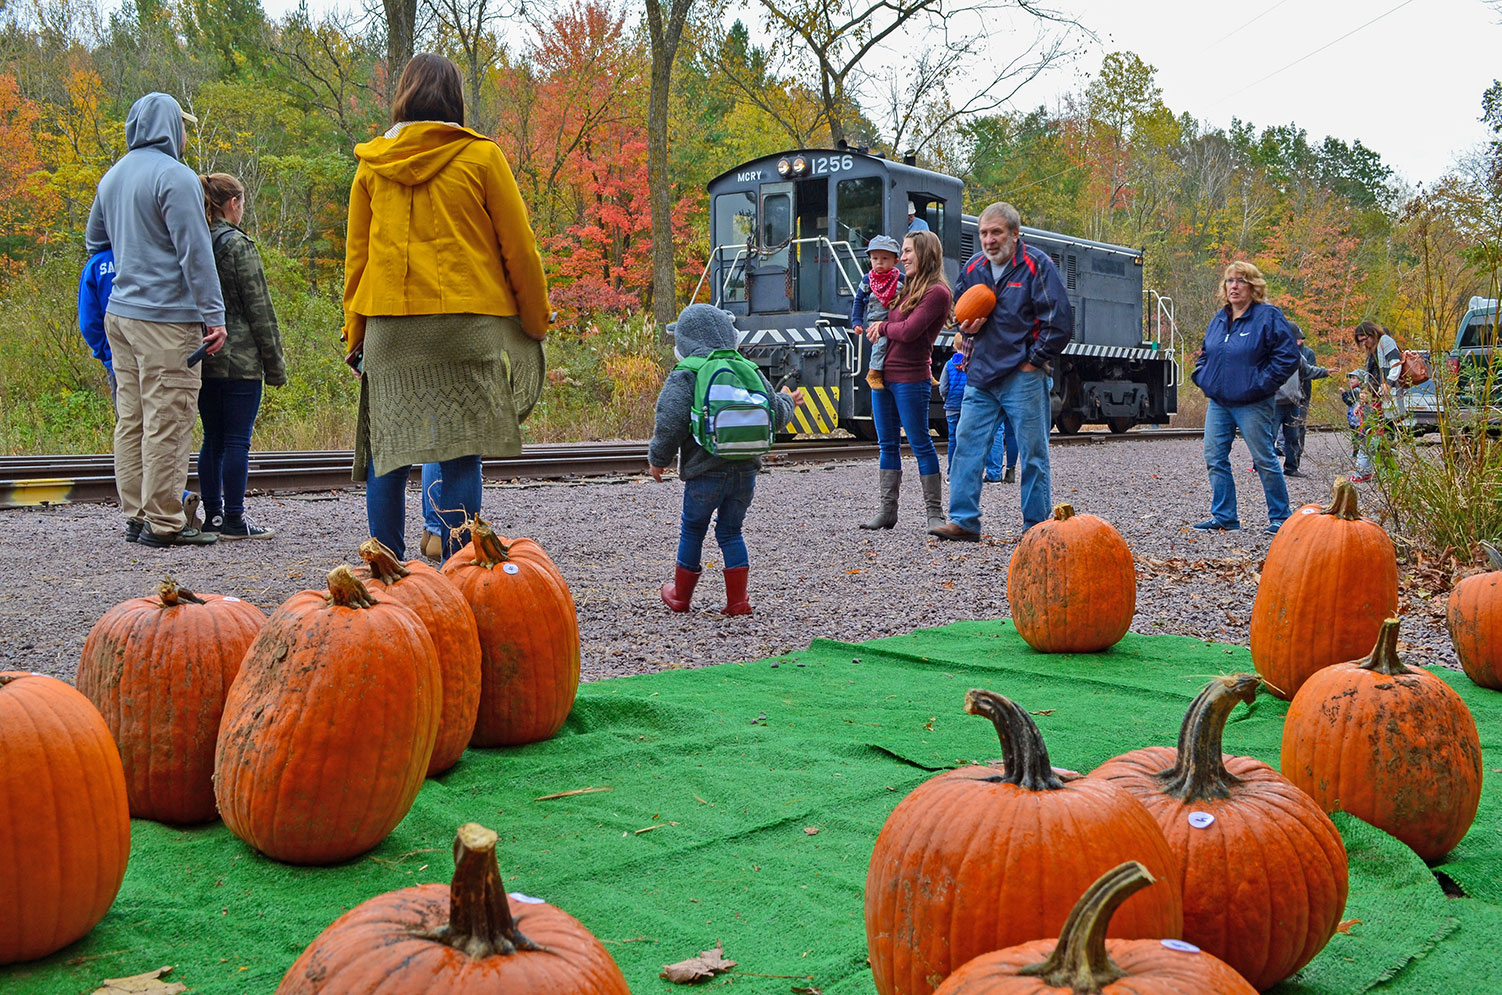 Pumpkins in foreground with passengers and locomotive in background